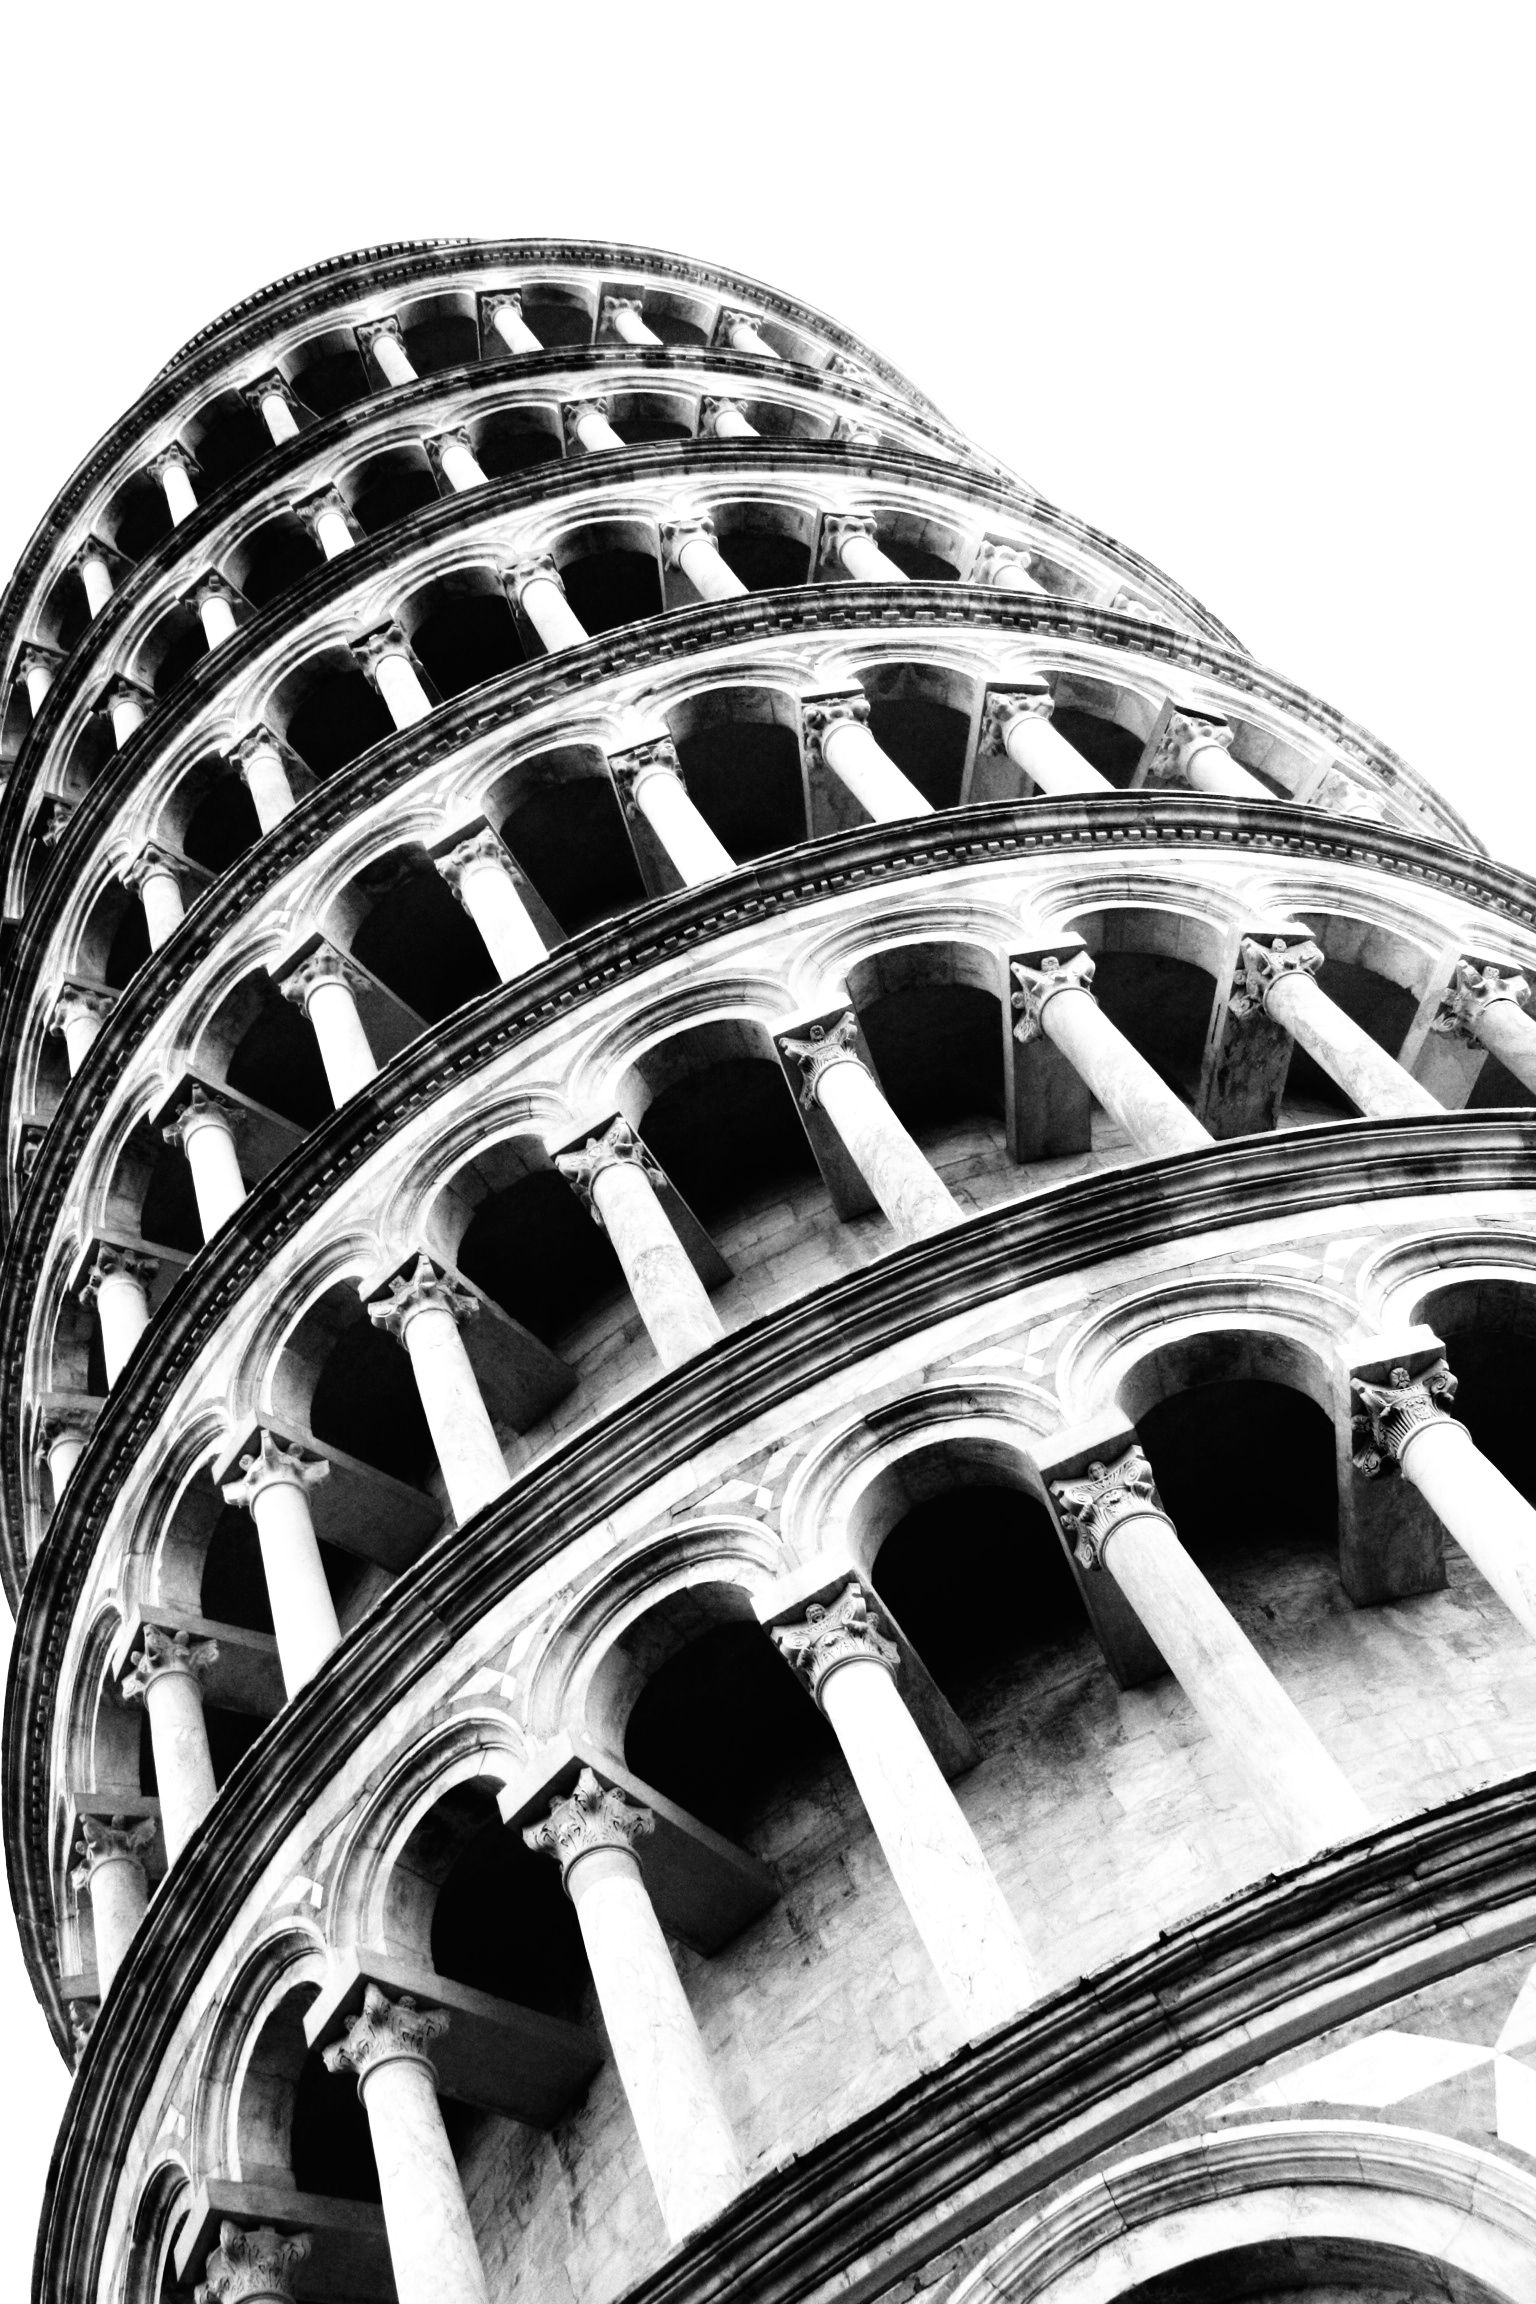 steps in leaning tower of pisa leaning tower of pisa italy from 1883 journal stock in of pisa steps tower leaning